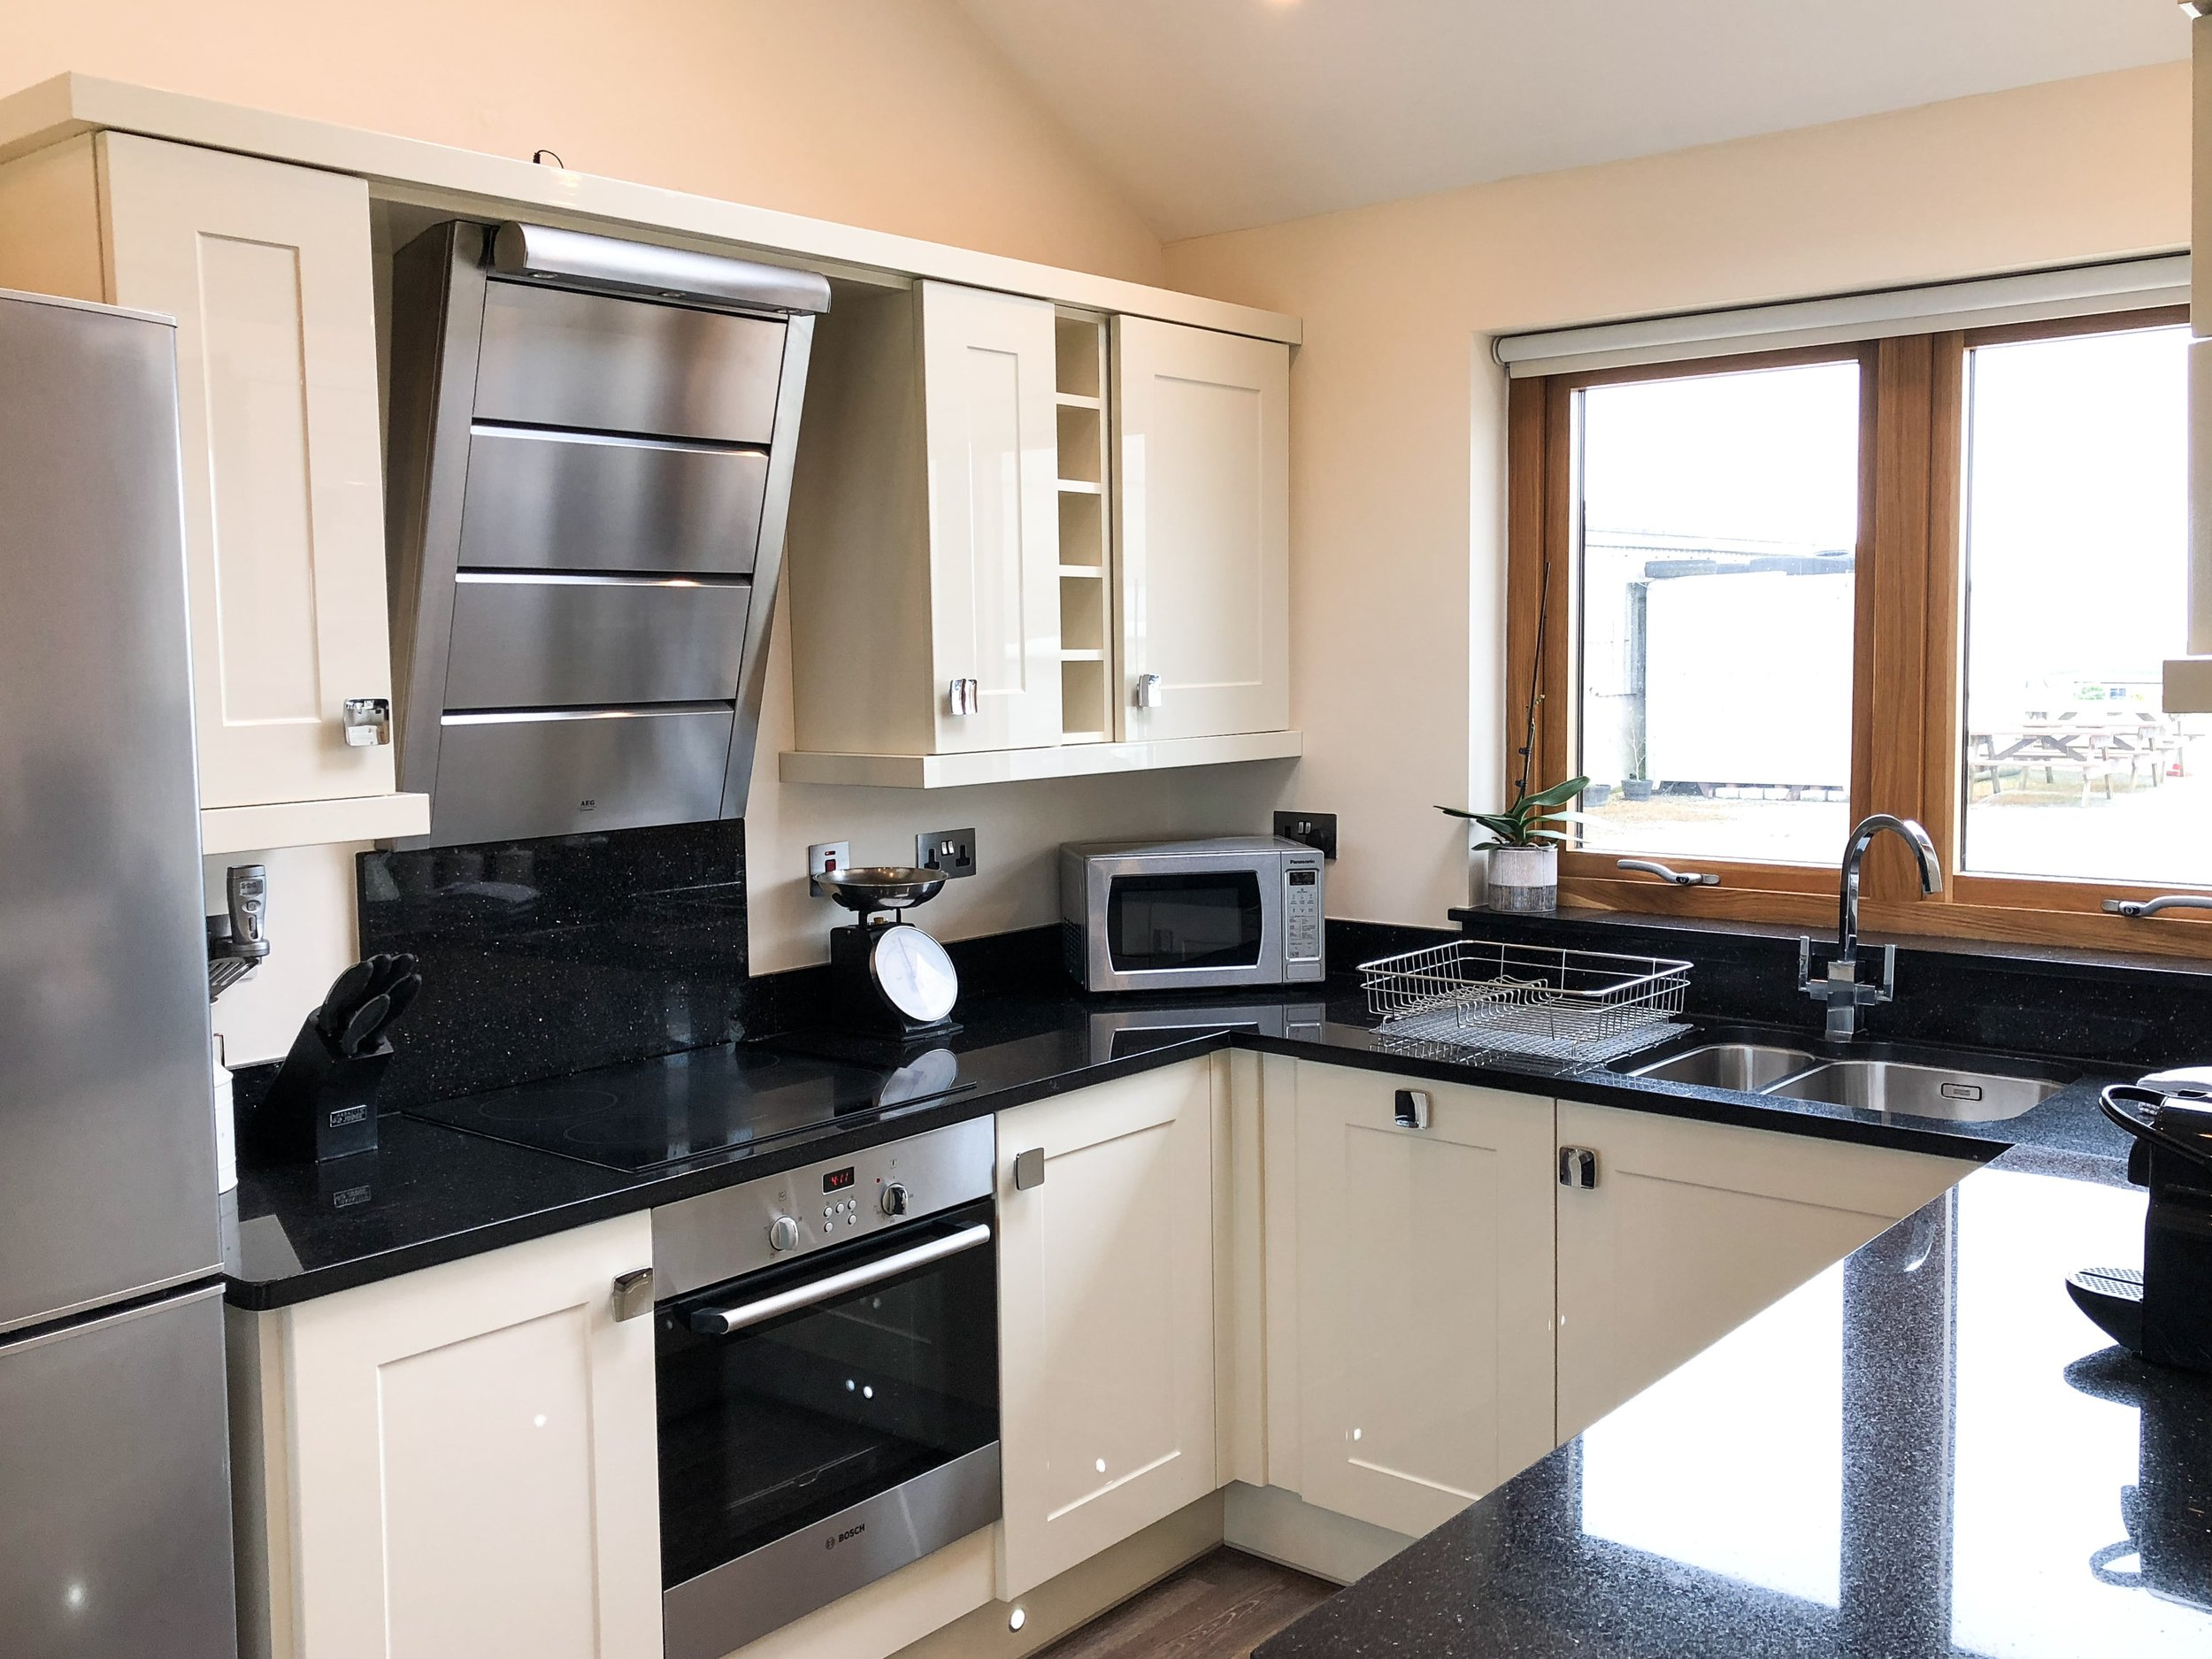 Cream kitchen with granite worktops